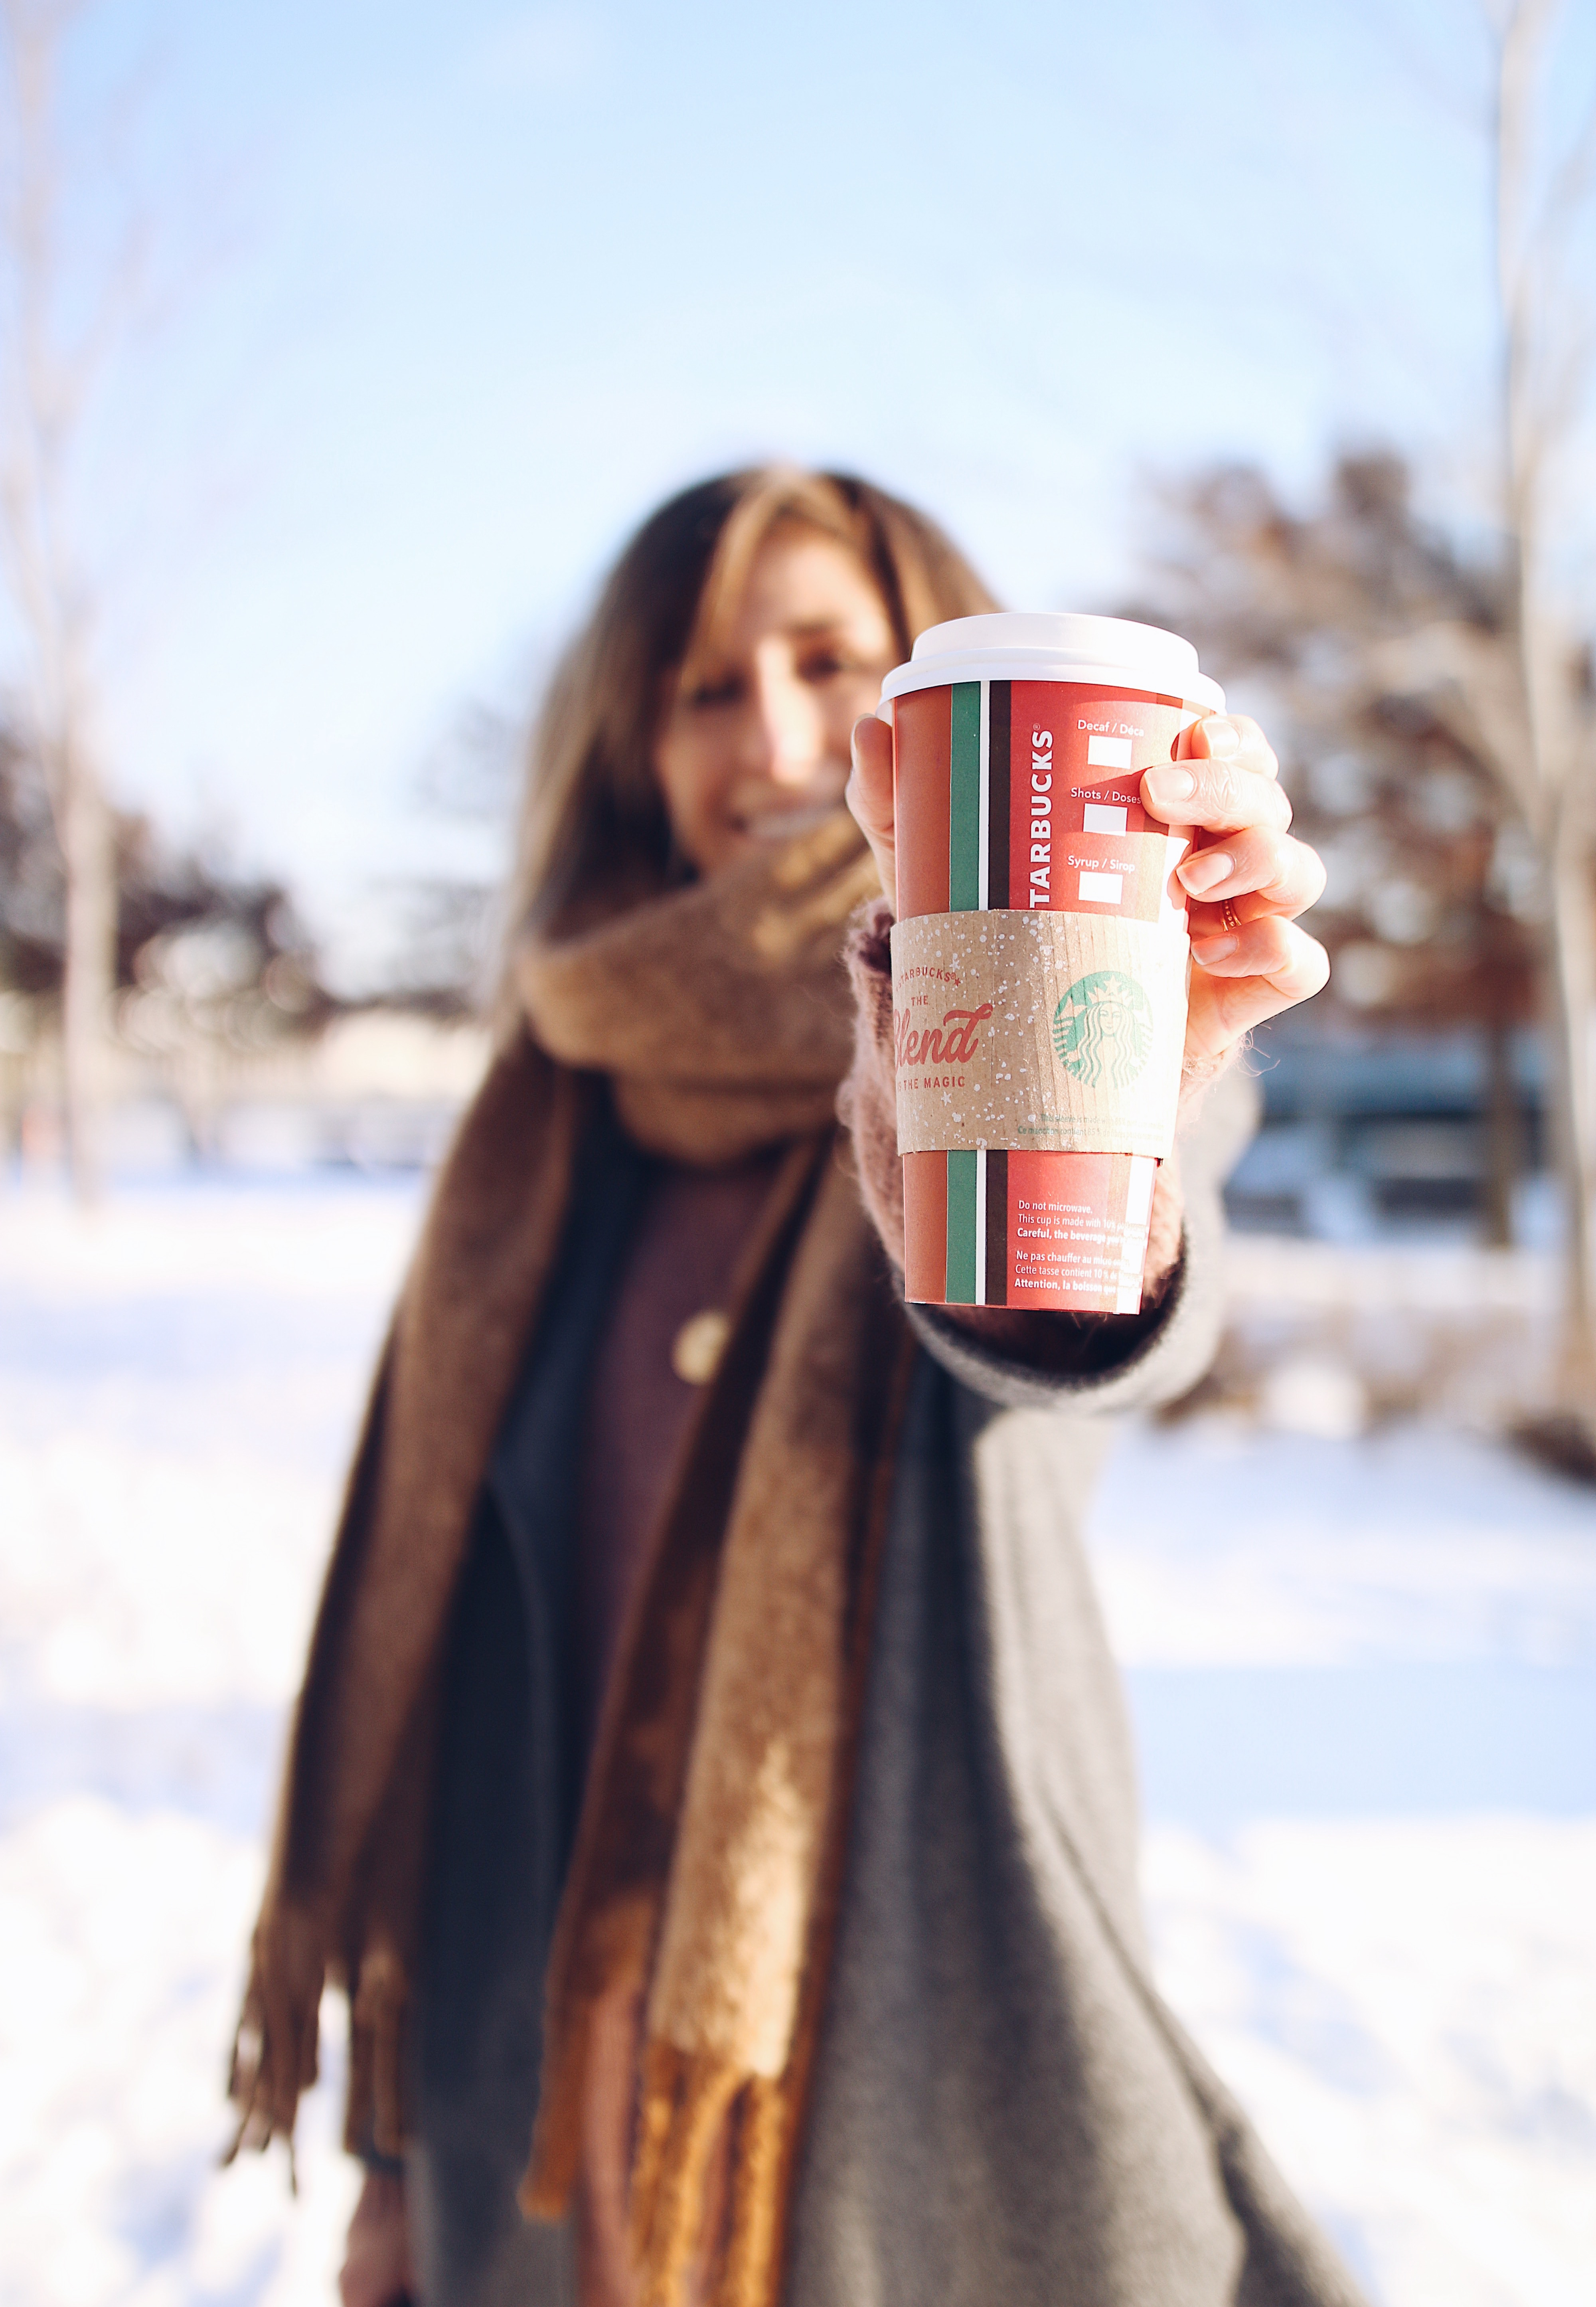 HAVE A HOT CHOCOLATE AT STARBUCKS, WINTER OUTFIT IN MONTREAL